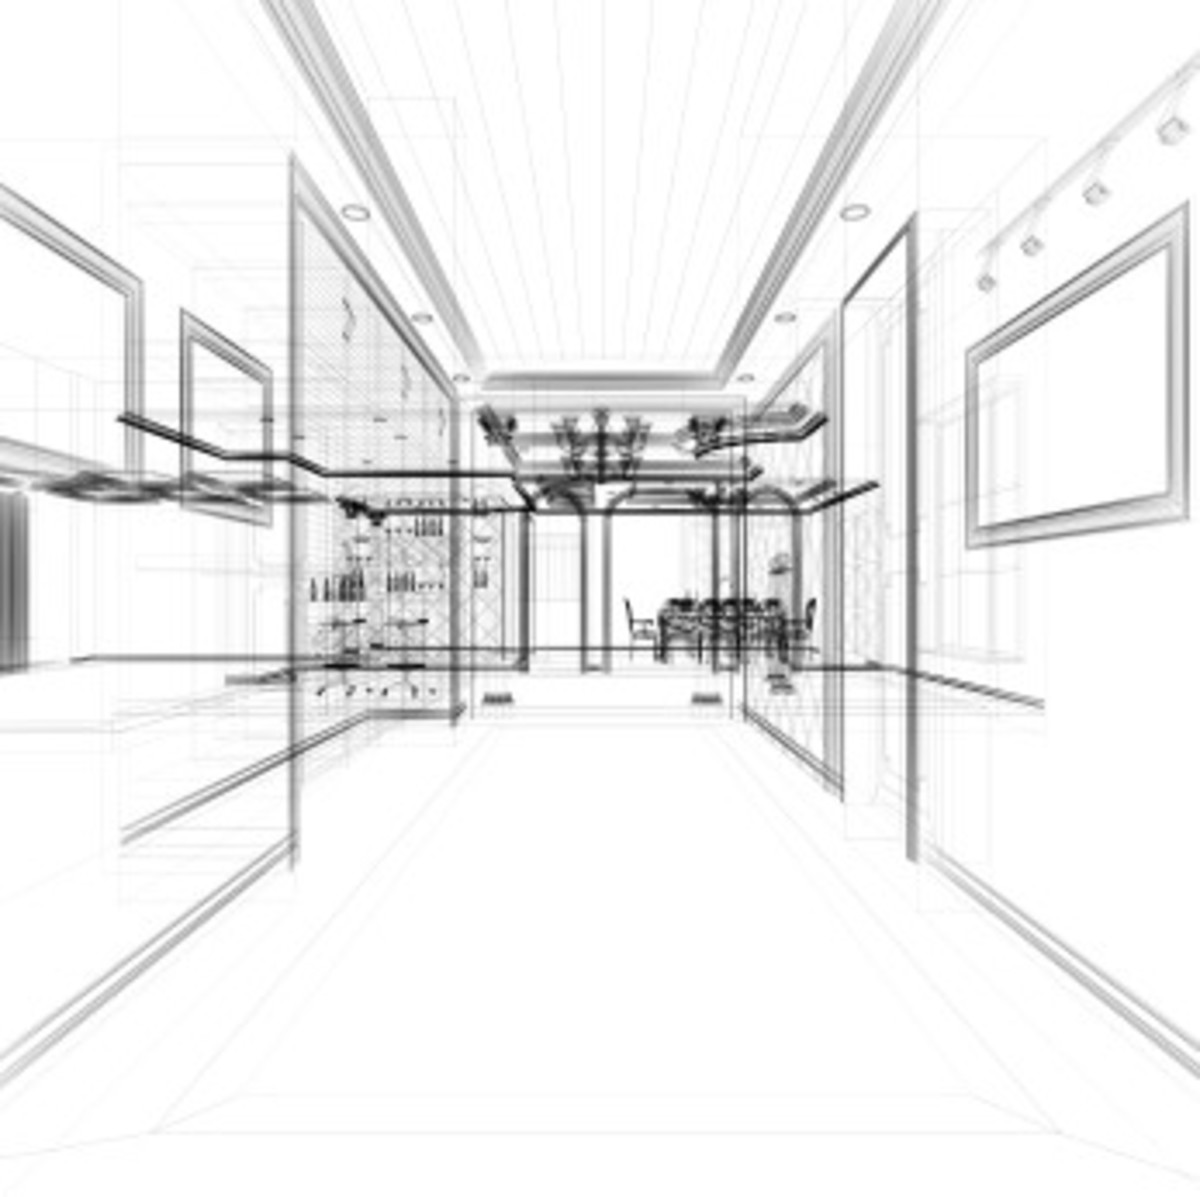 hnd-interior-design-education_attend-a_distance-learning-class